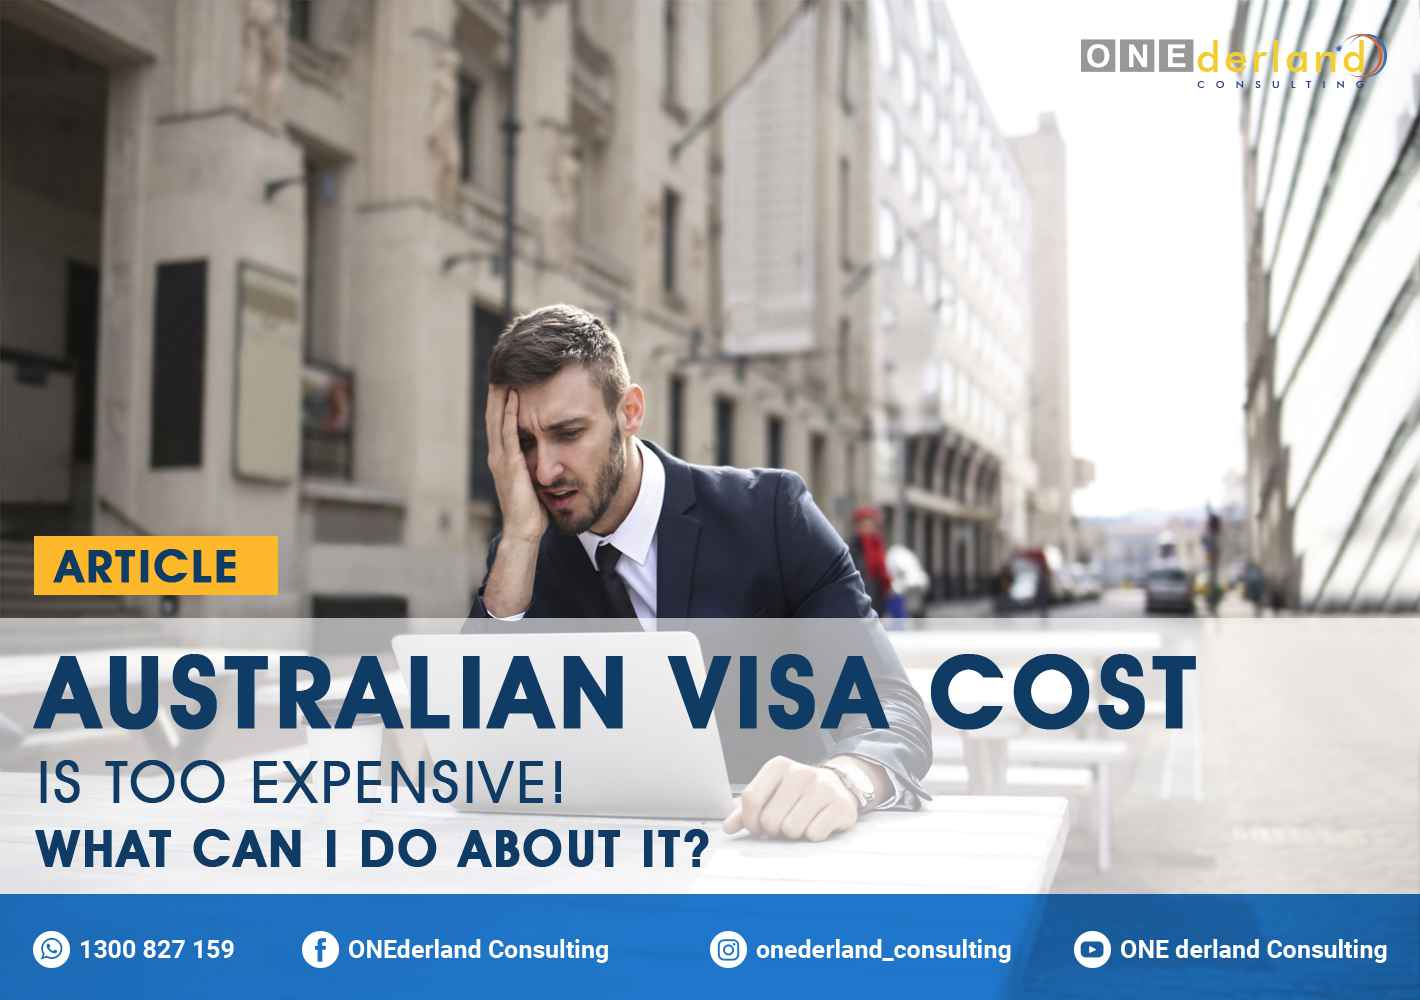 Australian Visa Cost is Too Expensive! What can I do about it?